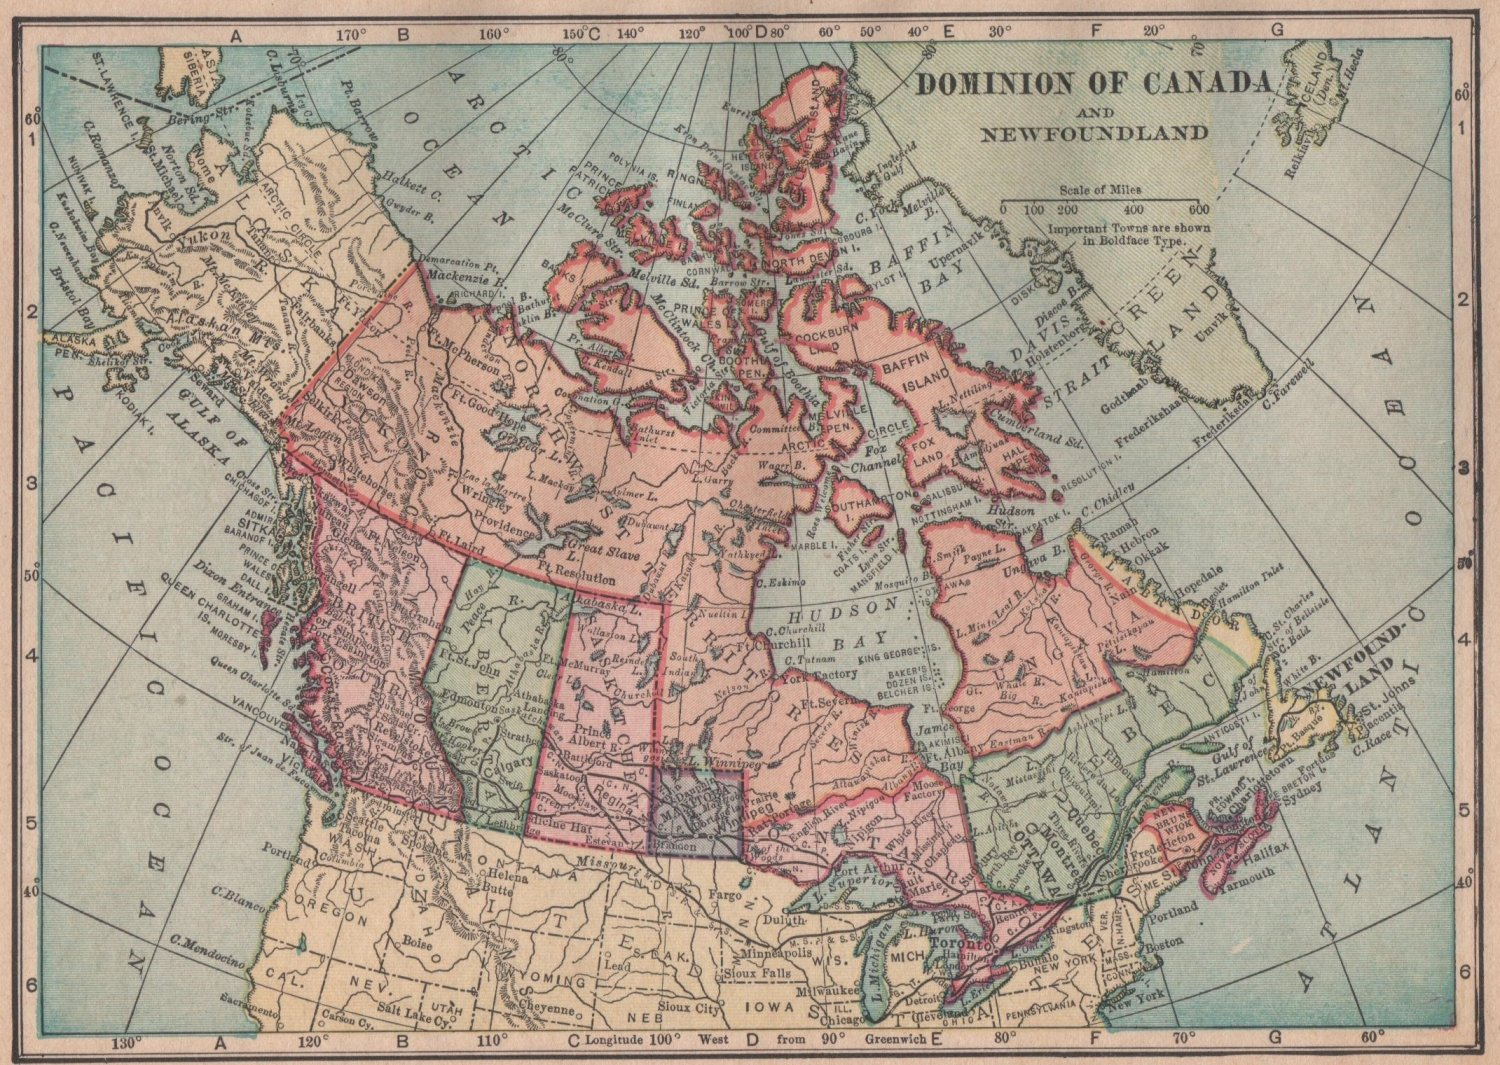 Map of The Dominion of Canada, C.S. Hammond Atlas, Full Color c.1910